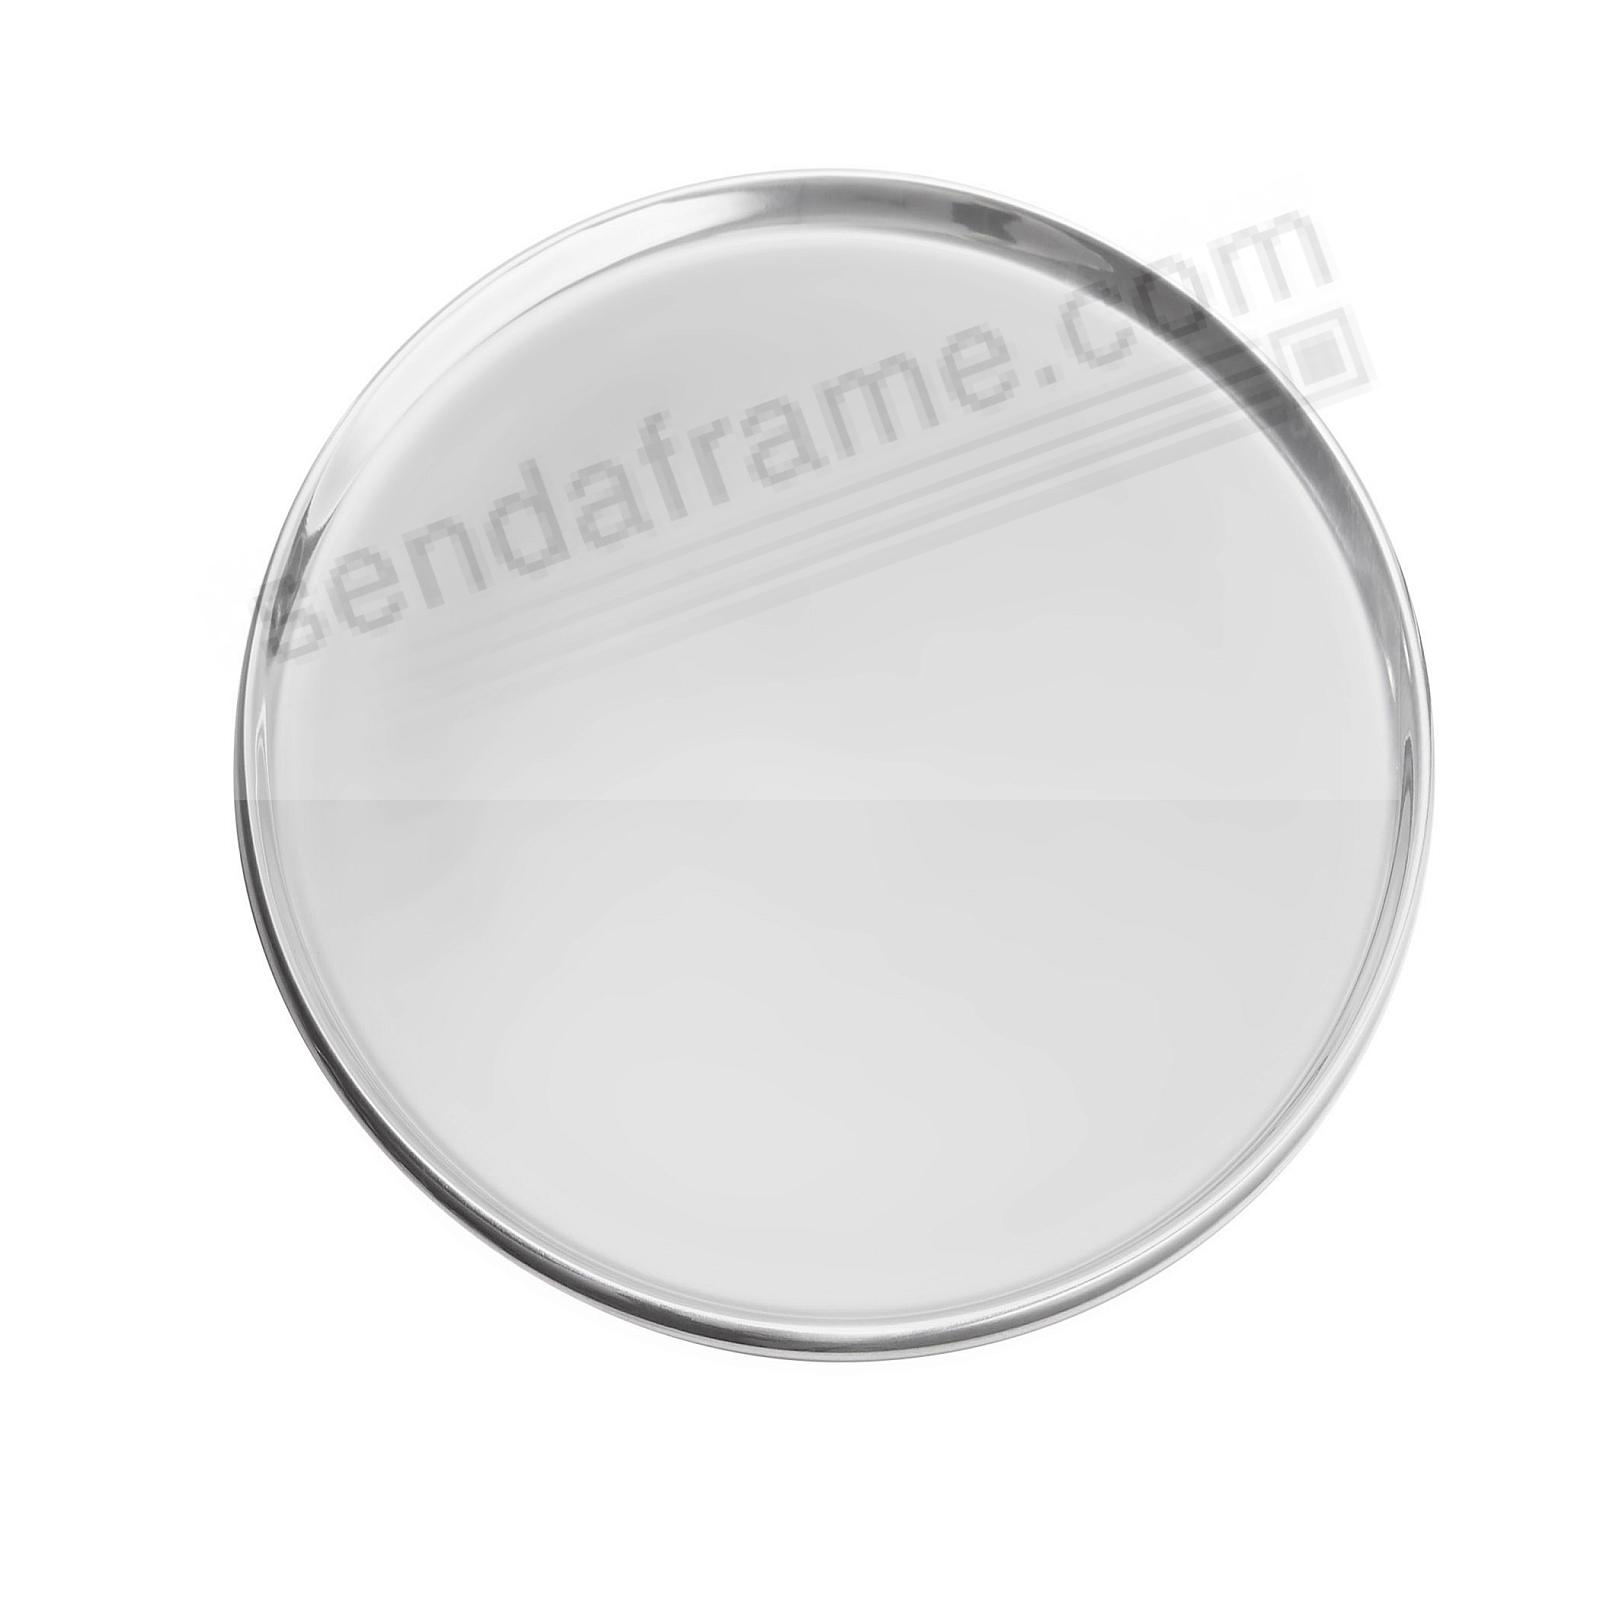 CLASSIC ROUND SERVING TRAY crafted by Nambe®